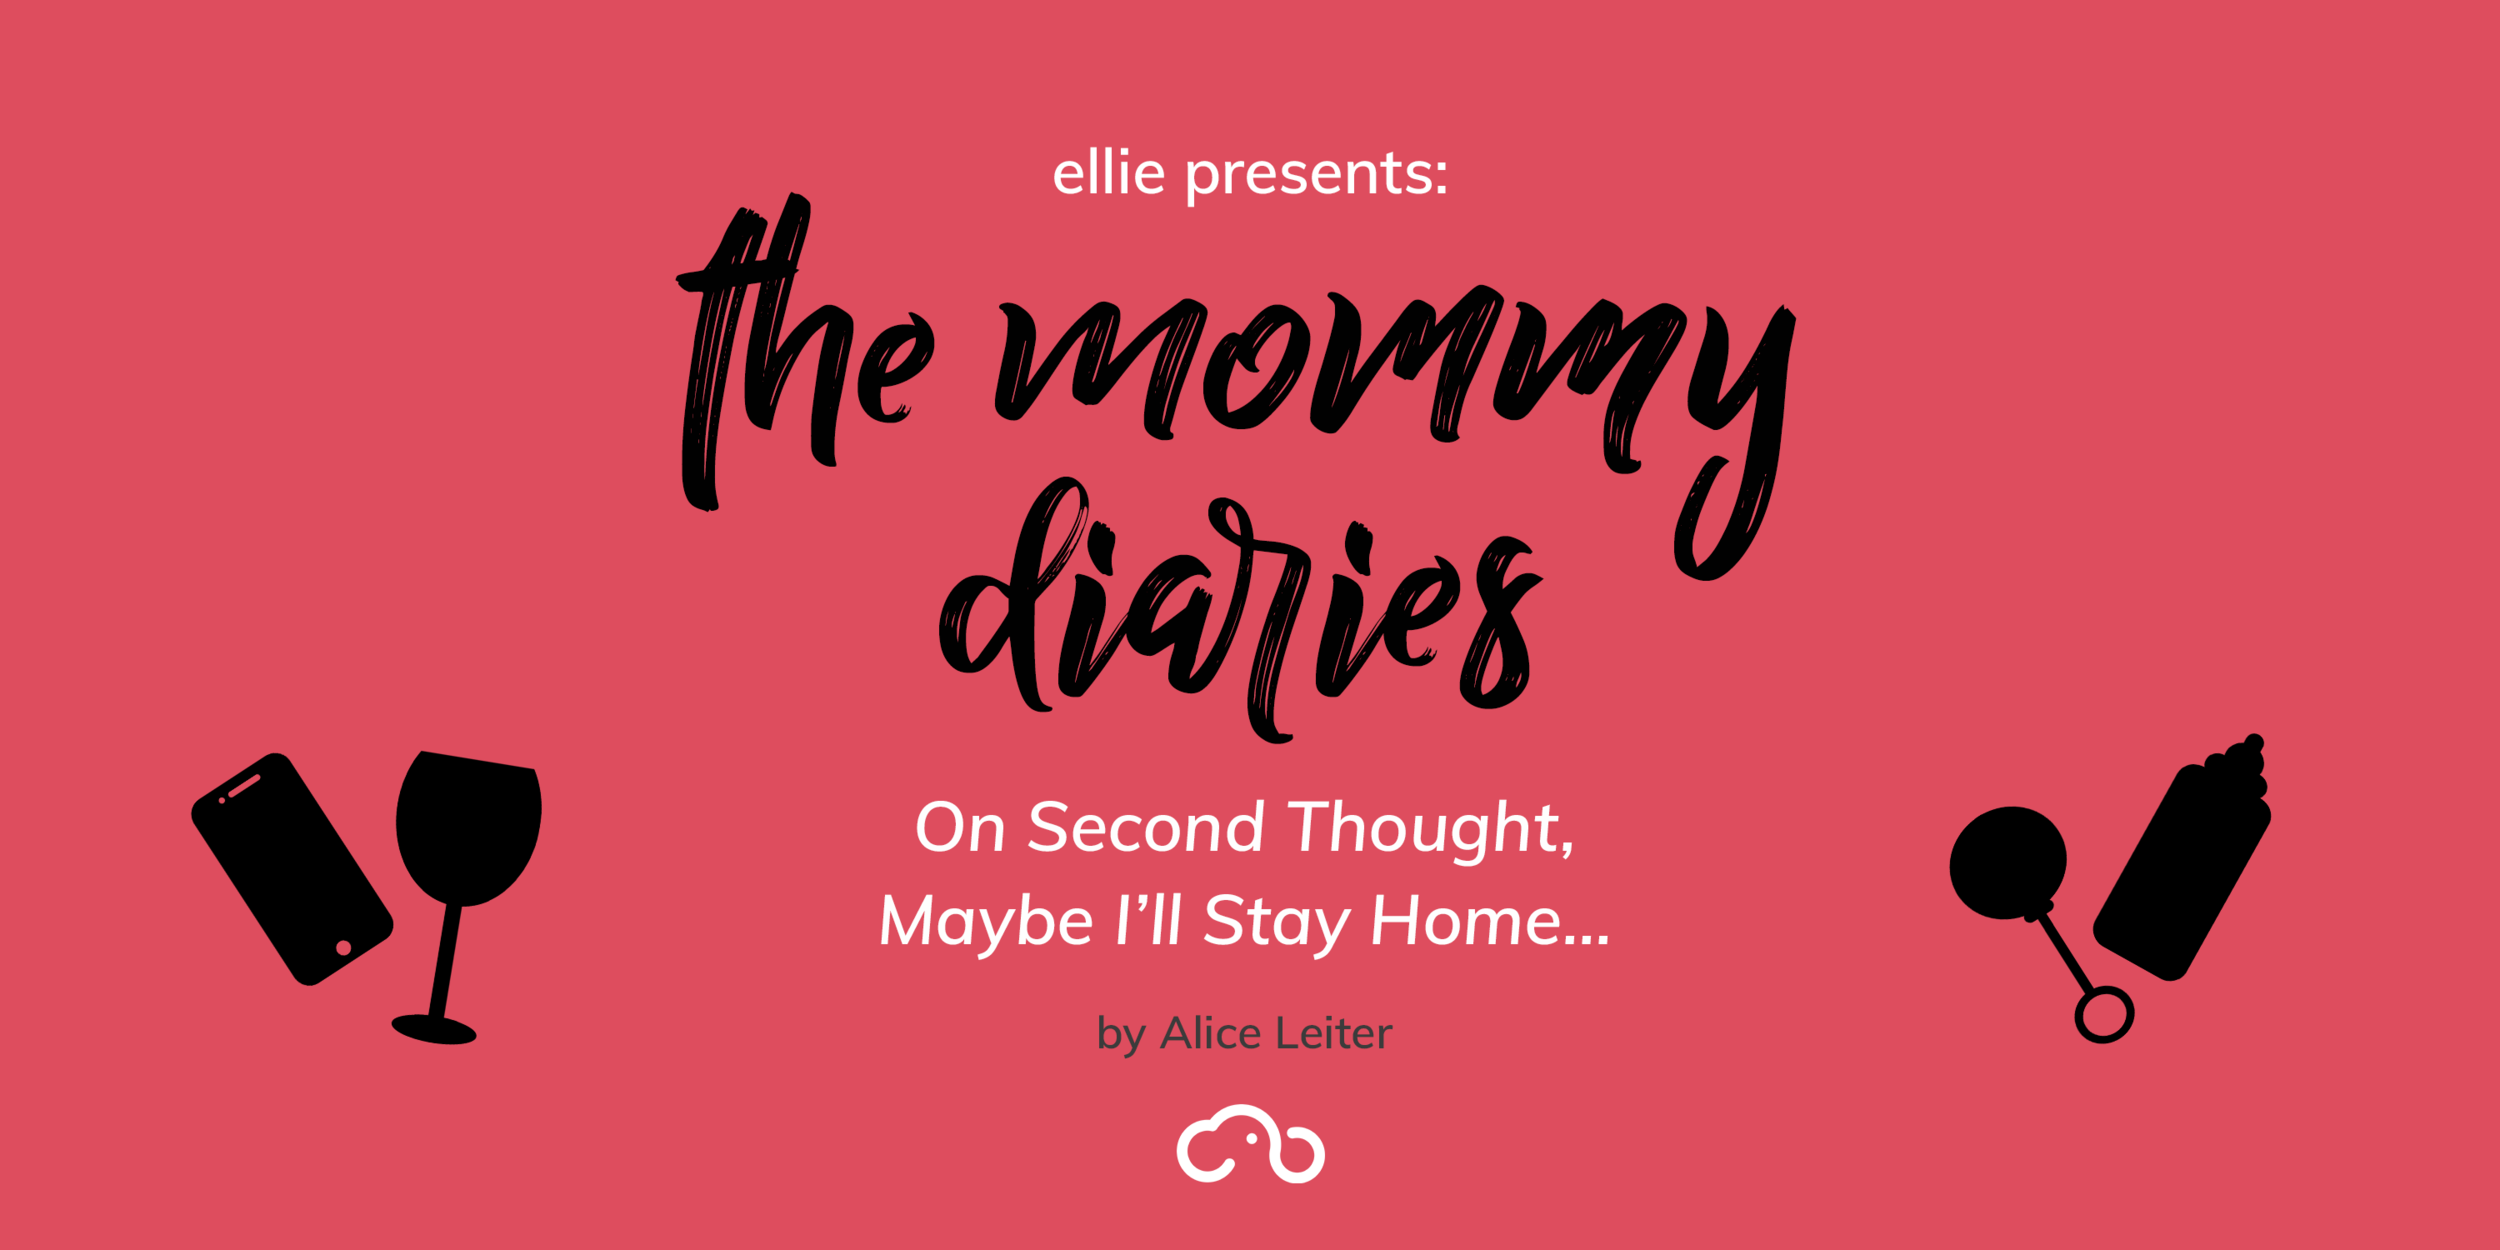 ellie presents: the mommy diaries On Second Thought Maybe I'll Stay Home… by Alice Leiter